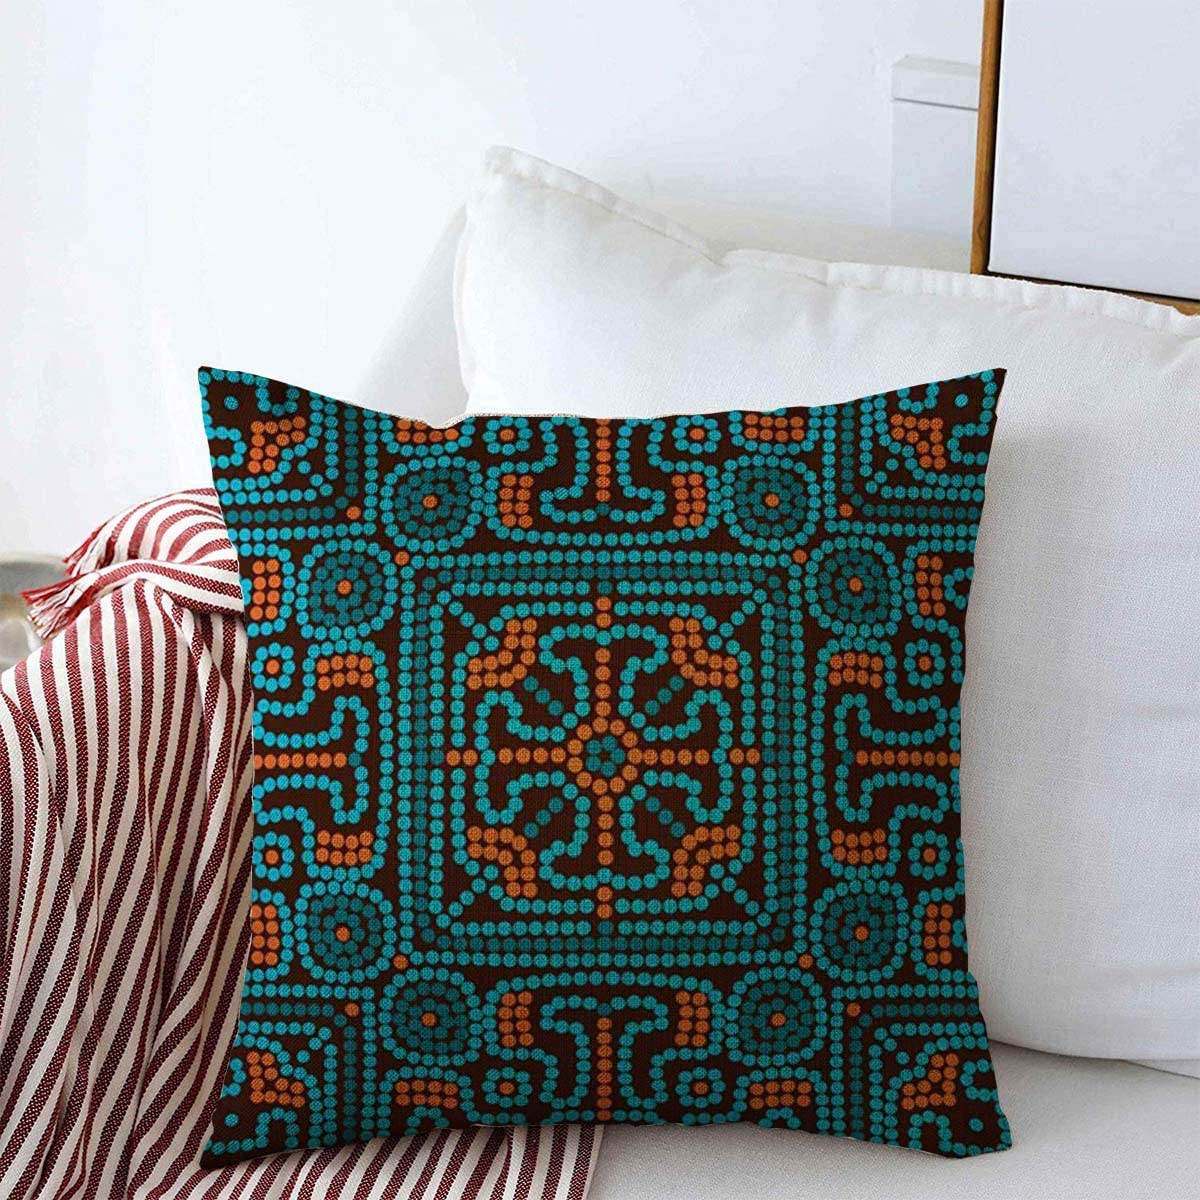 """Staroden Pillow Case Arabian Pattern Colourful Ethnic in Brown Blue Orange Mayan Colors African Latin American Dot Aztec Home Decor Throw Pillows Covers 20""""x20"""" for Winter Decorations"""